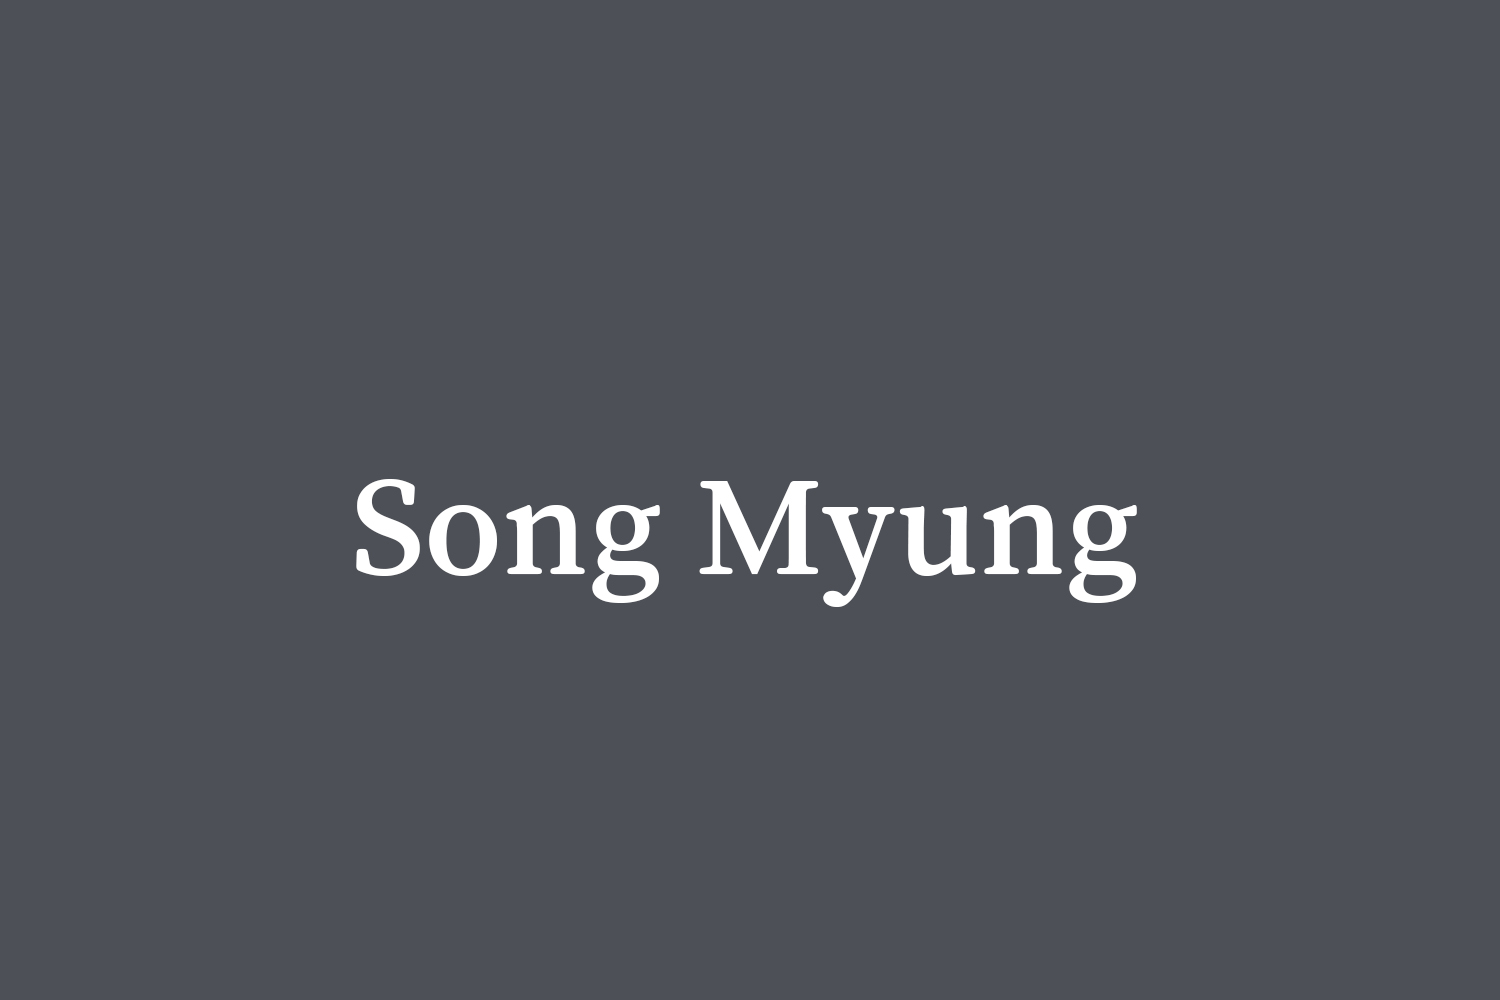 Song Myung